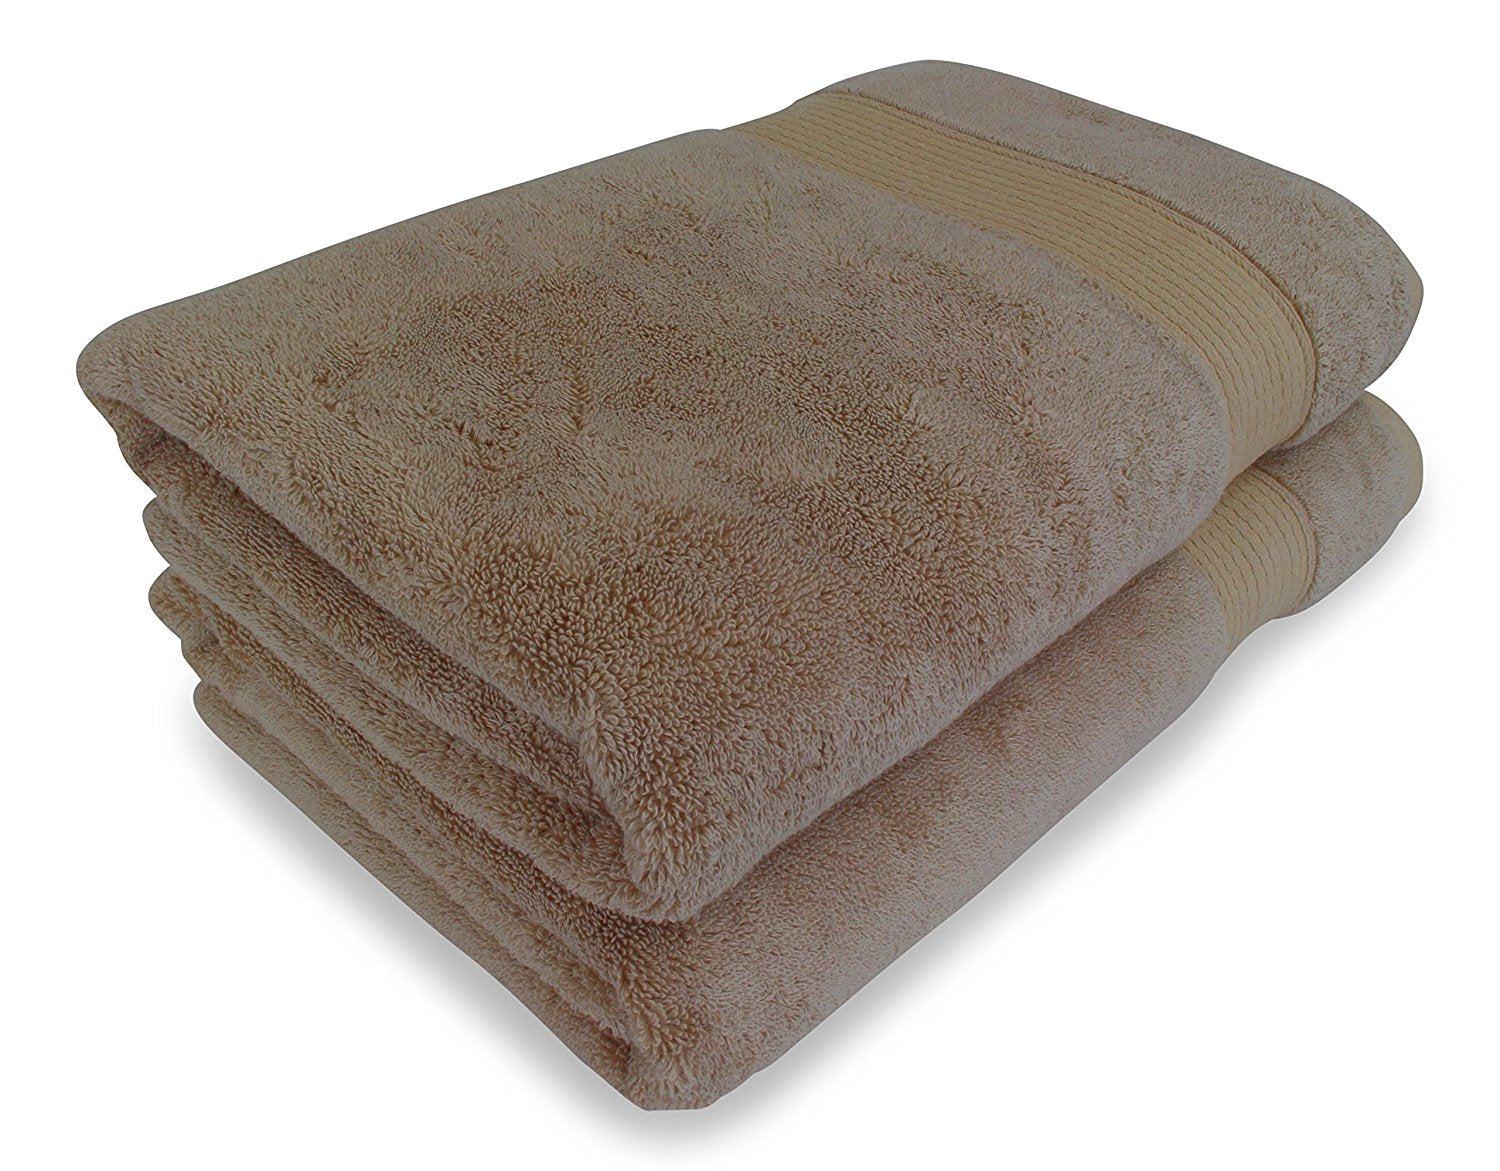 Silk Turkish Cotton Bath Towels - 40 Pieces